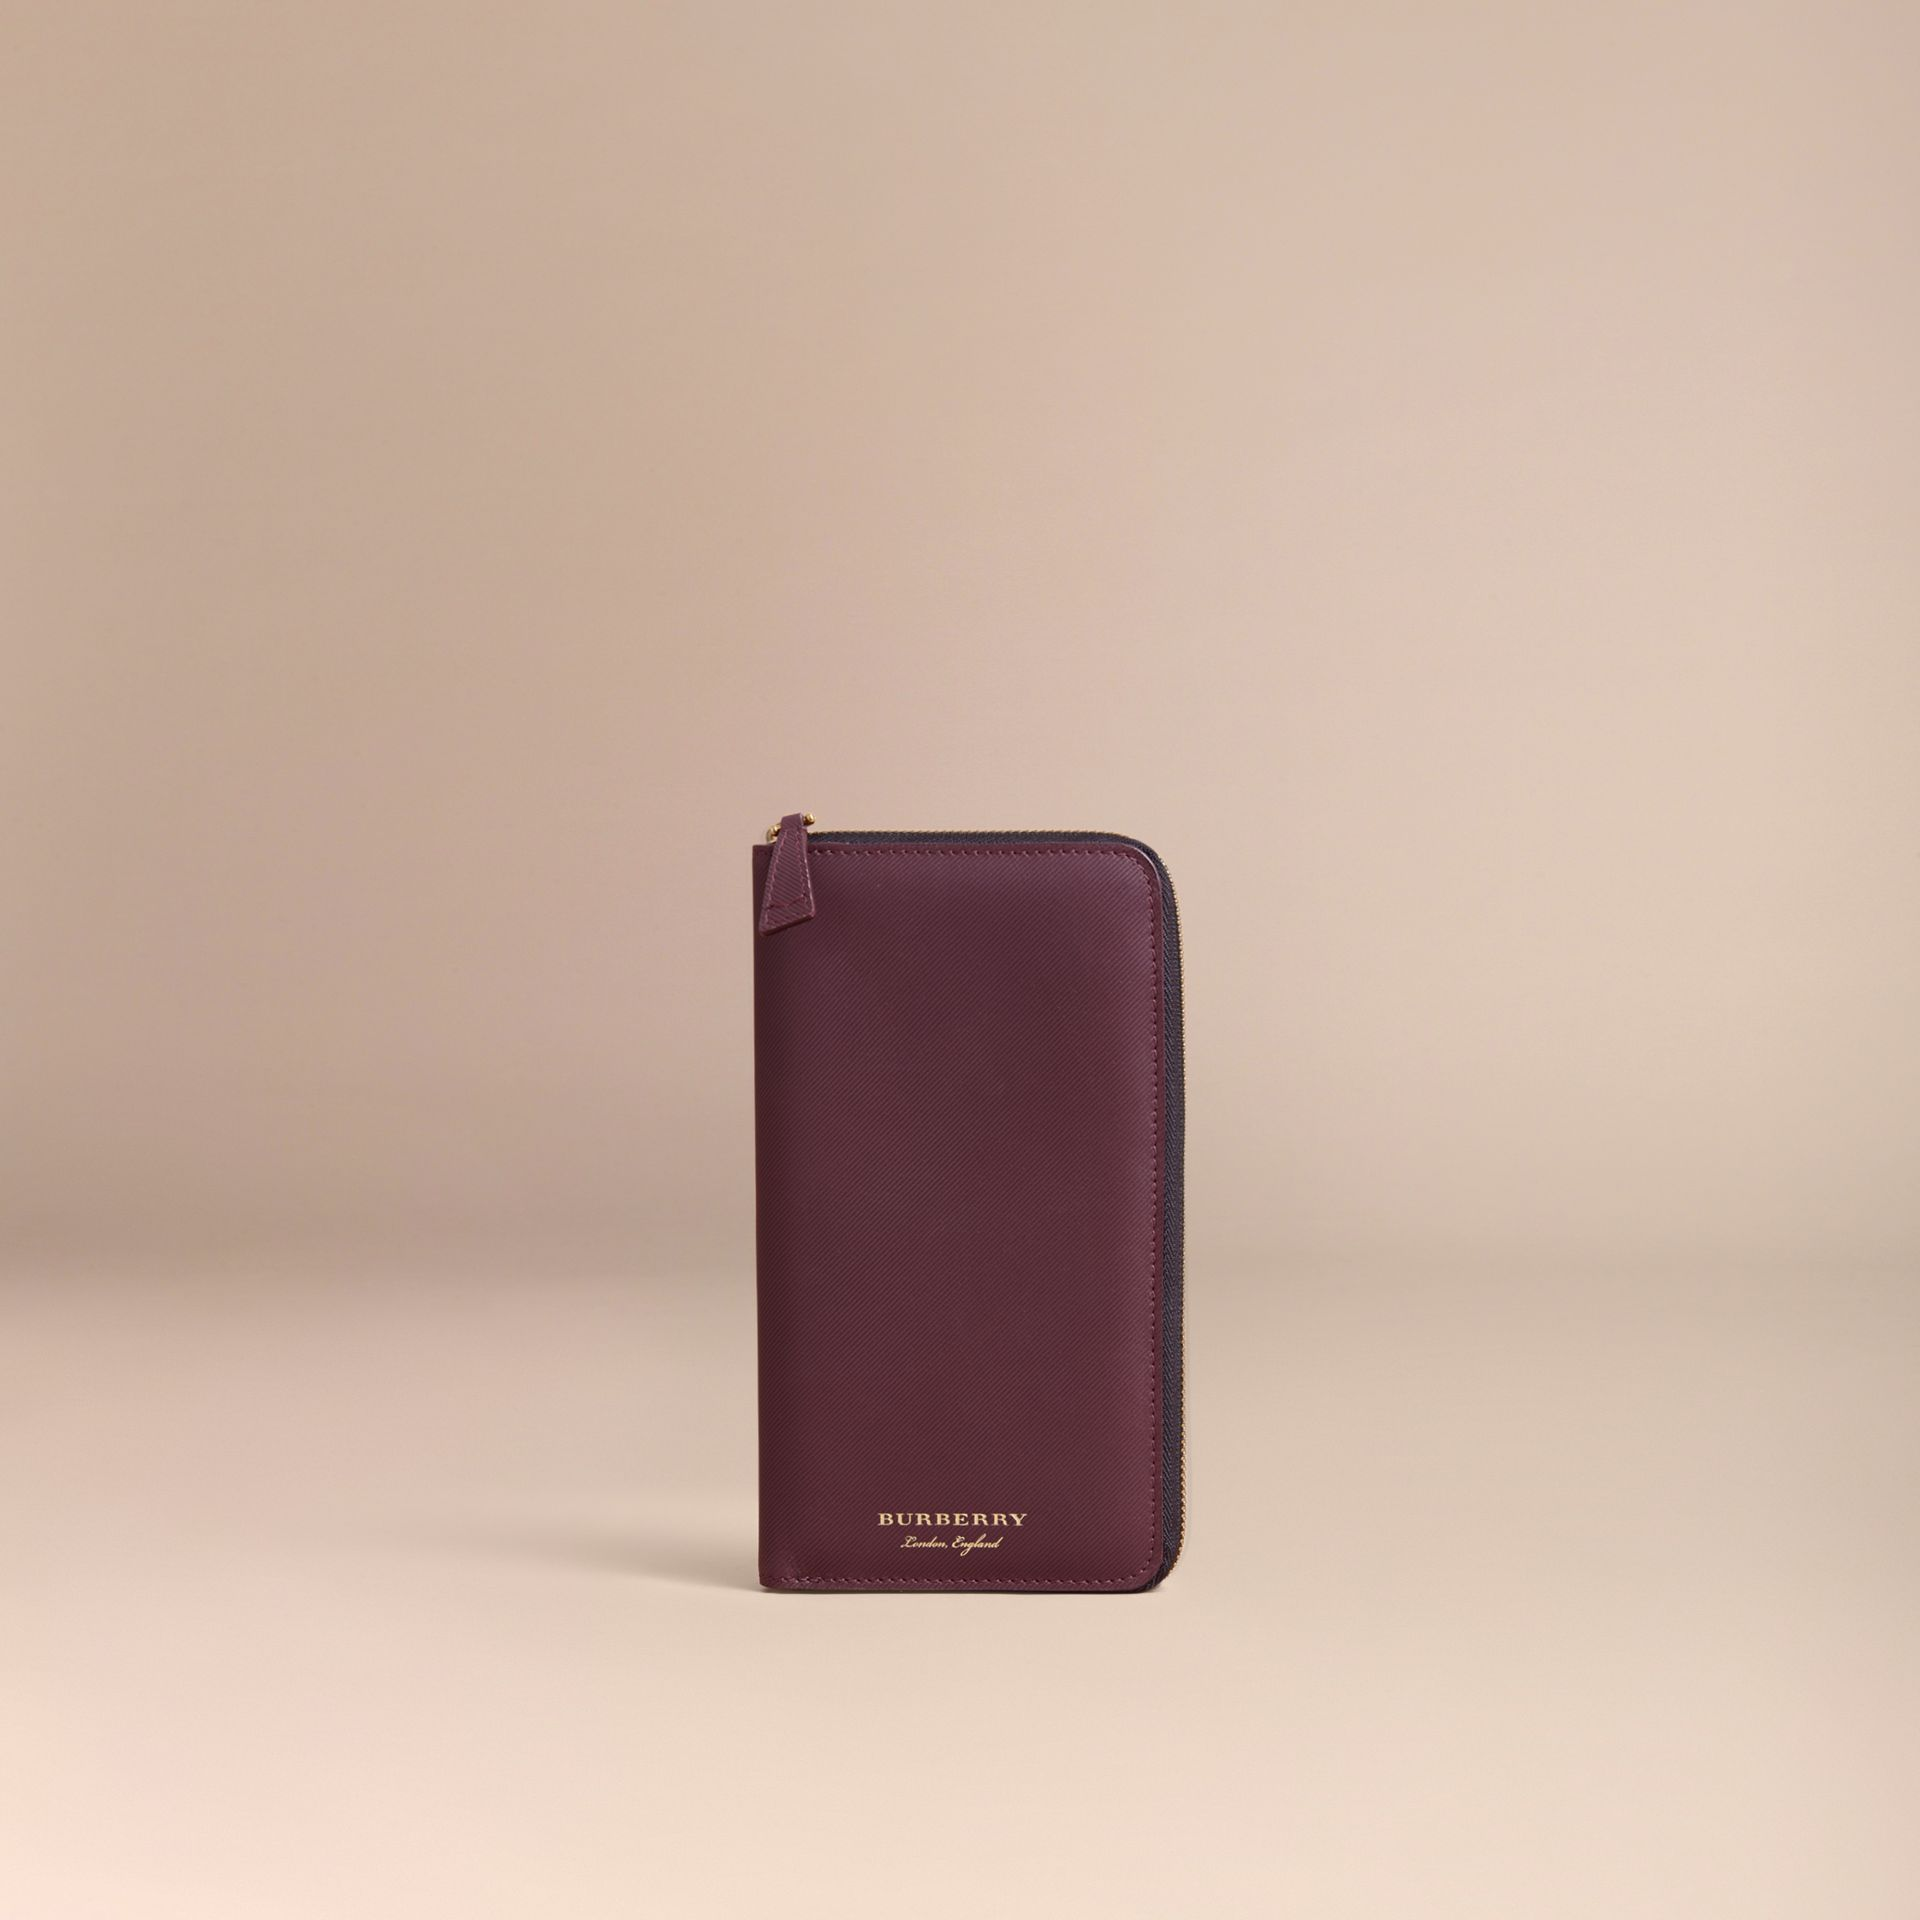 Trench Leather Ziparound Wallet in Wine - Men | Burberry - gallery image 6